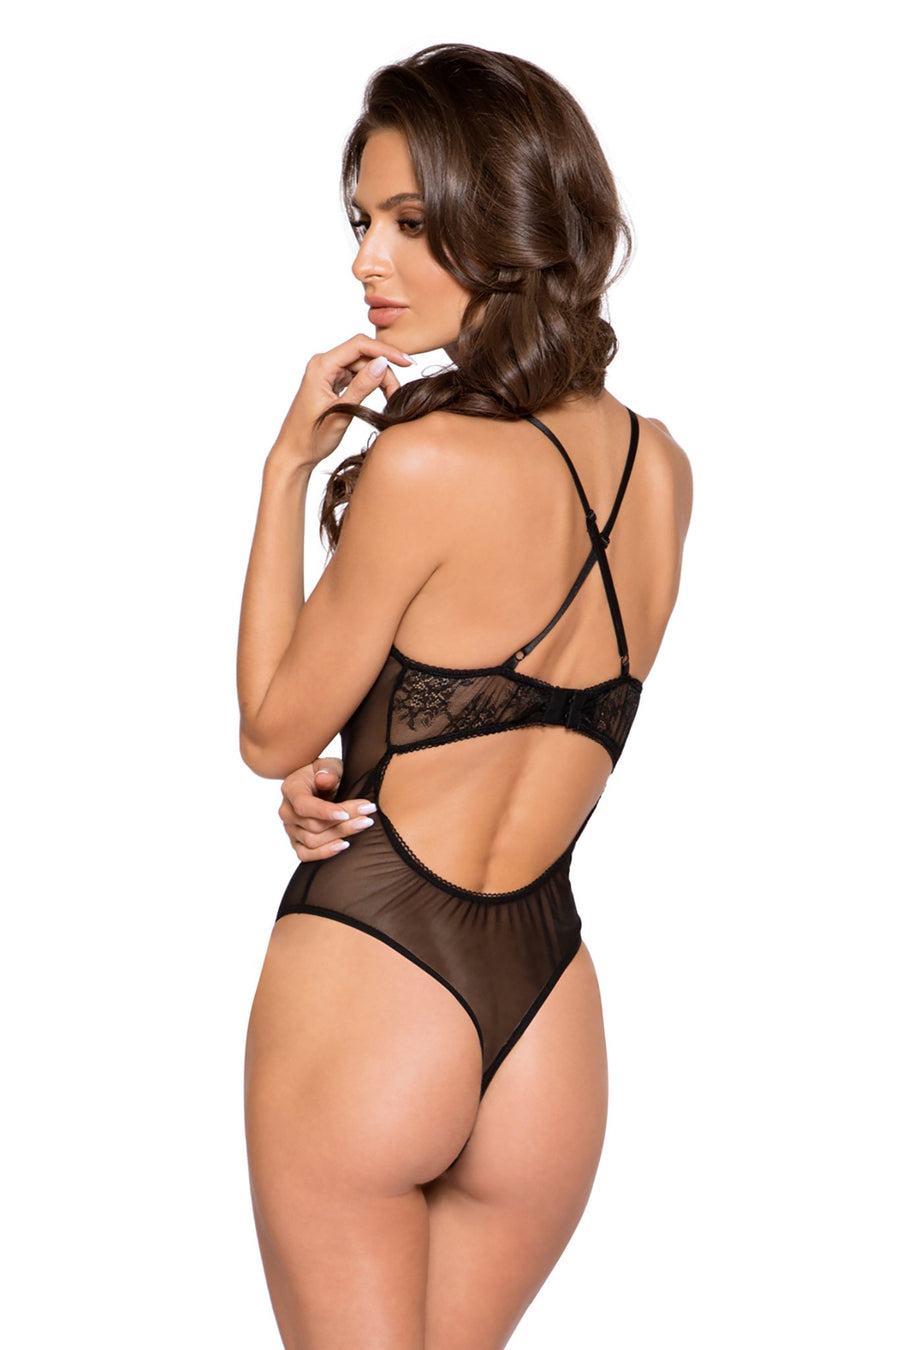 Sheer Lace & Mesh Bodysuit with Lace-Up Detail & Snap Bottom - Intimates, Roma - YourLamode